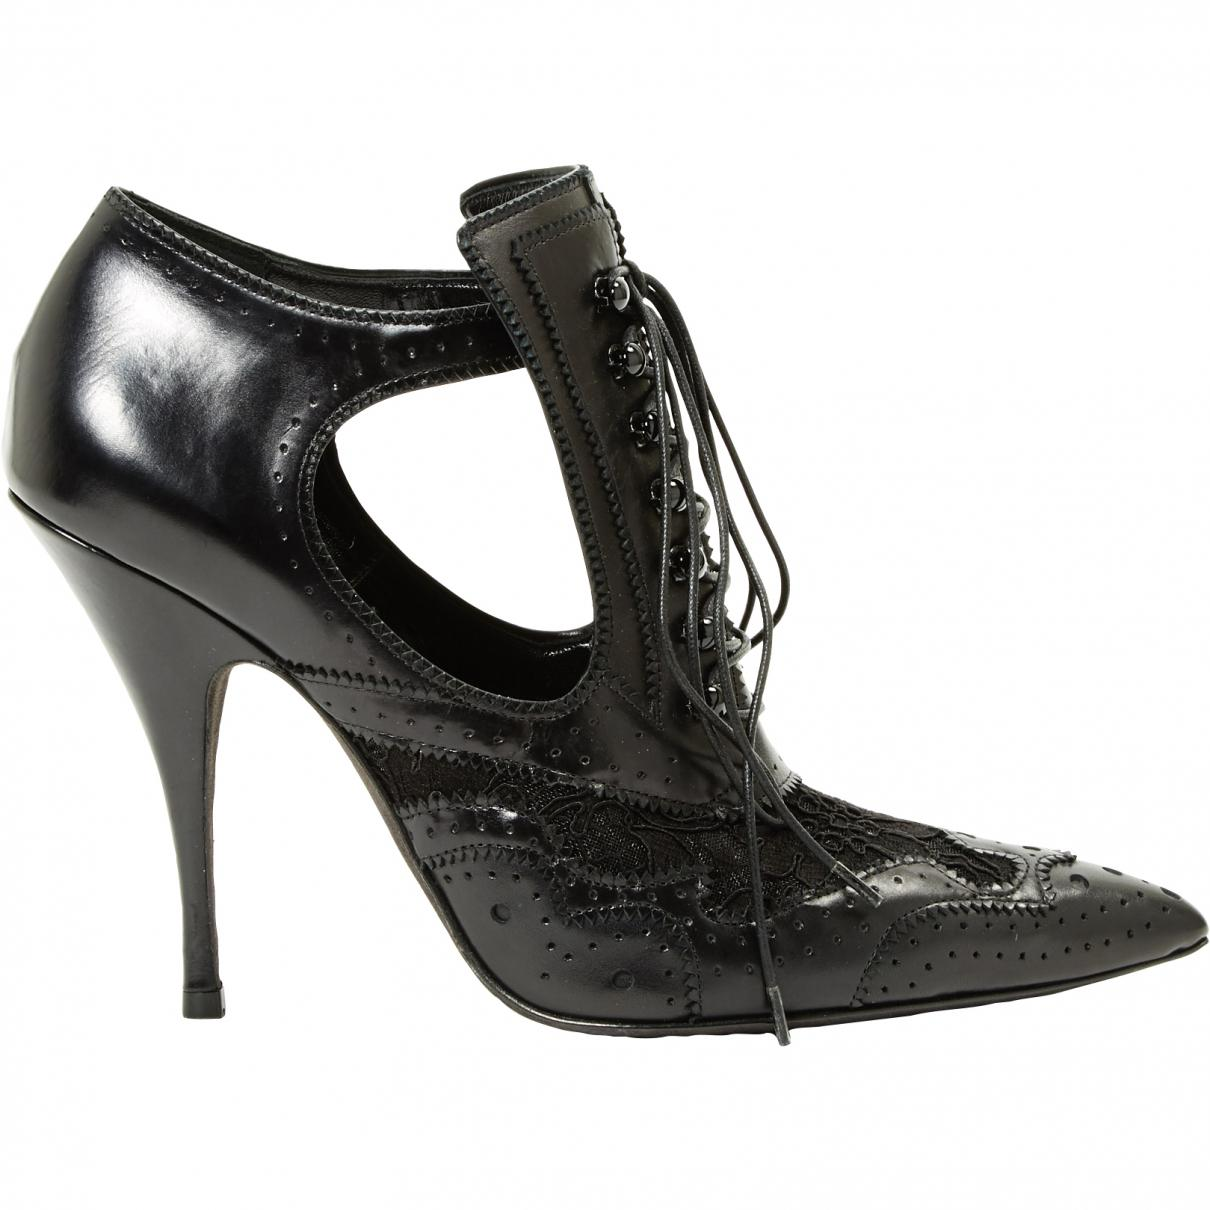 Pre-owned - Leather heels Givenchy wlGyEMLp